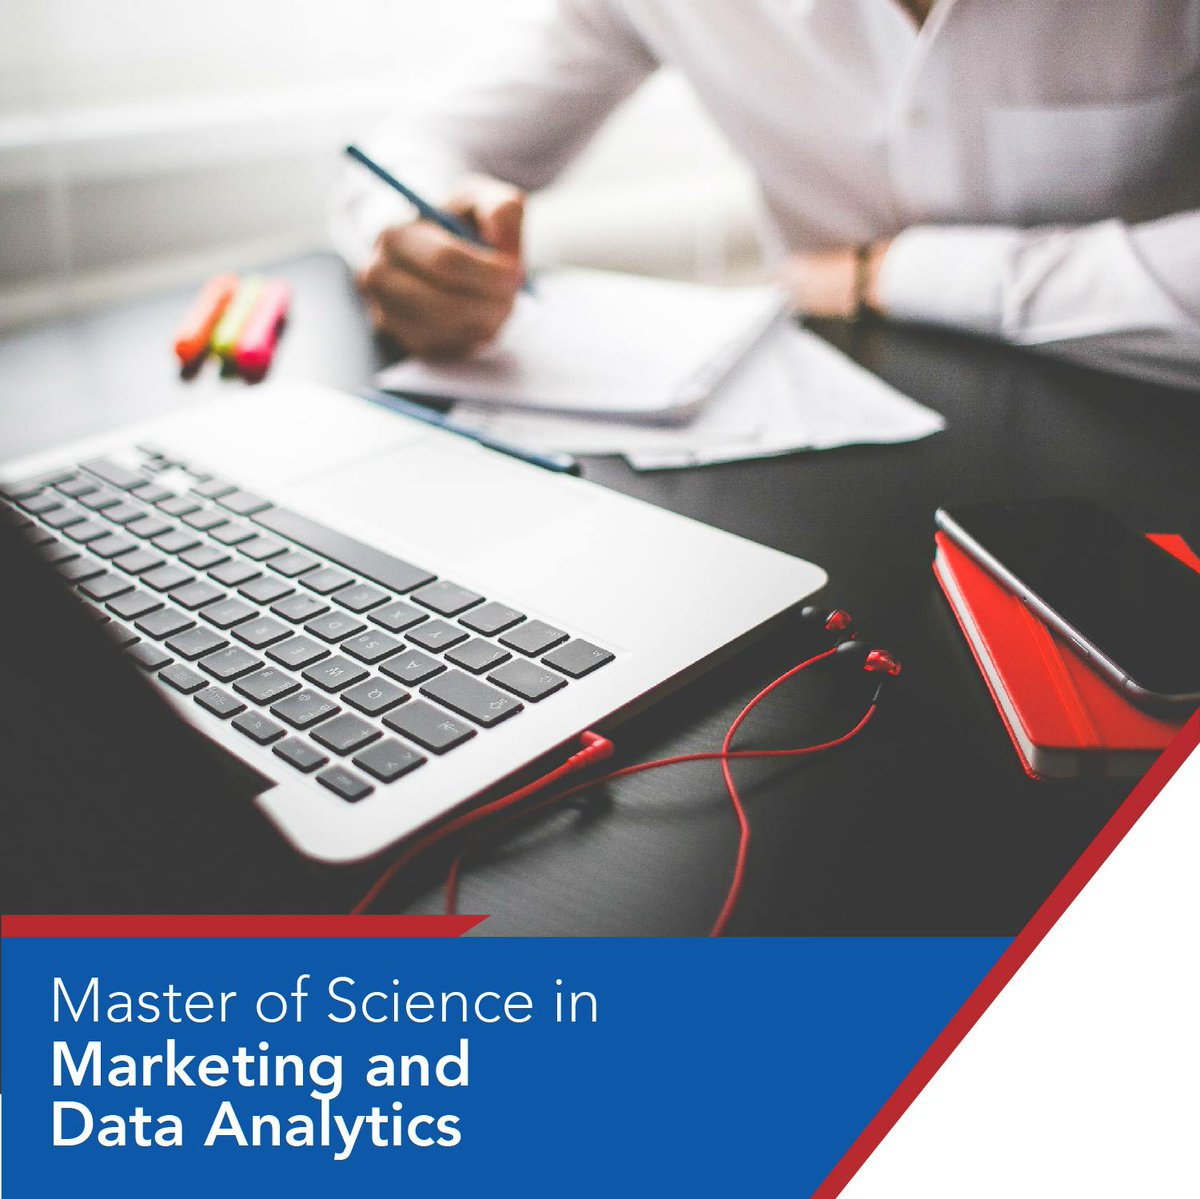 Delve into the dynamic world of #Marketing!   Get an #MSc in Marketing &amp; Data Analytics from #MSBM and enhance your skills in predictive analytics and quantitative metrics in the field of marketing. Learn more:  http:// bit.ly/discoverMSBM  &nbsp;   #ForwardThinking #UWIMona #ApplyNow<br>http://pic.twitter.com/26Tis0z4zn